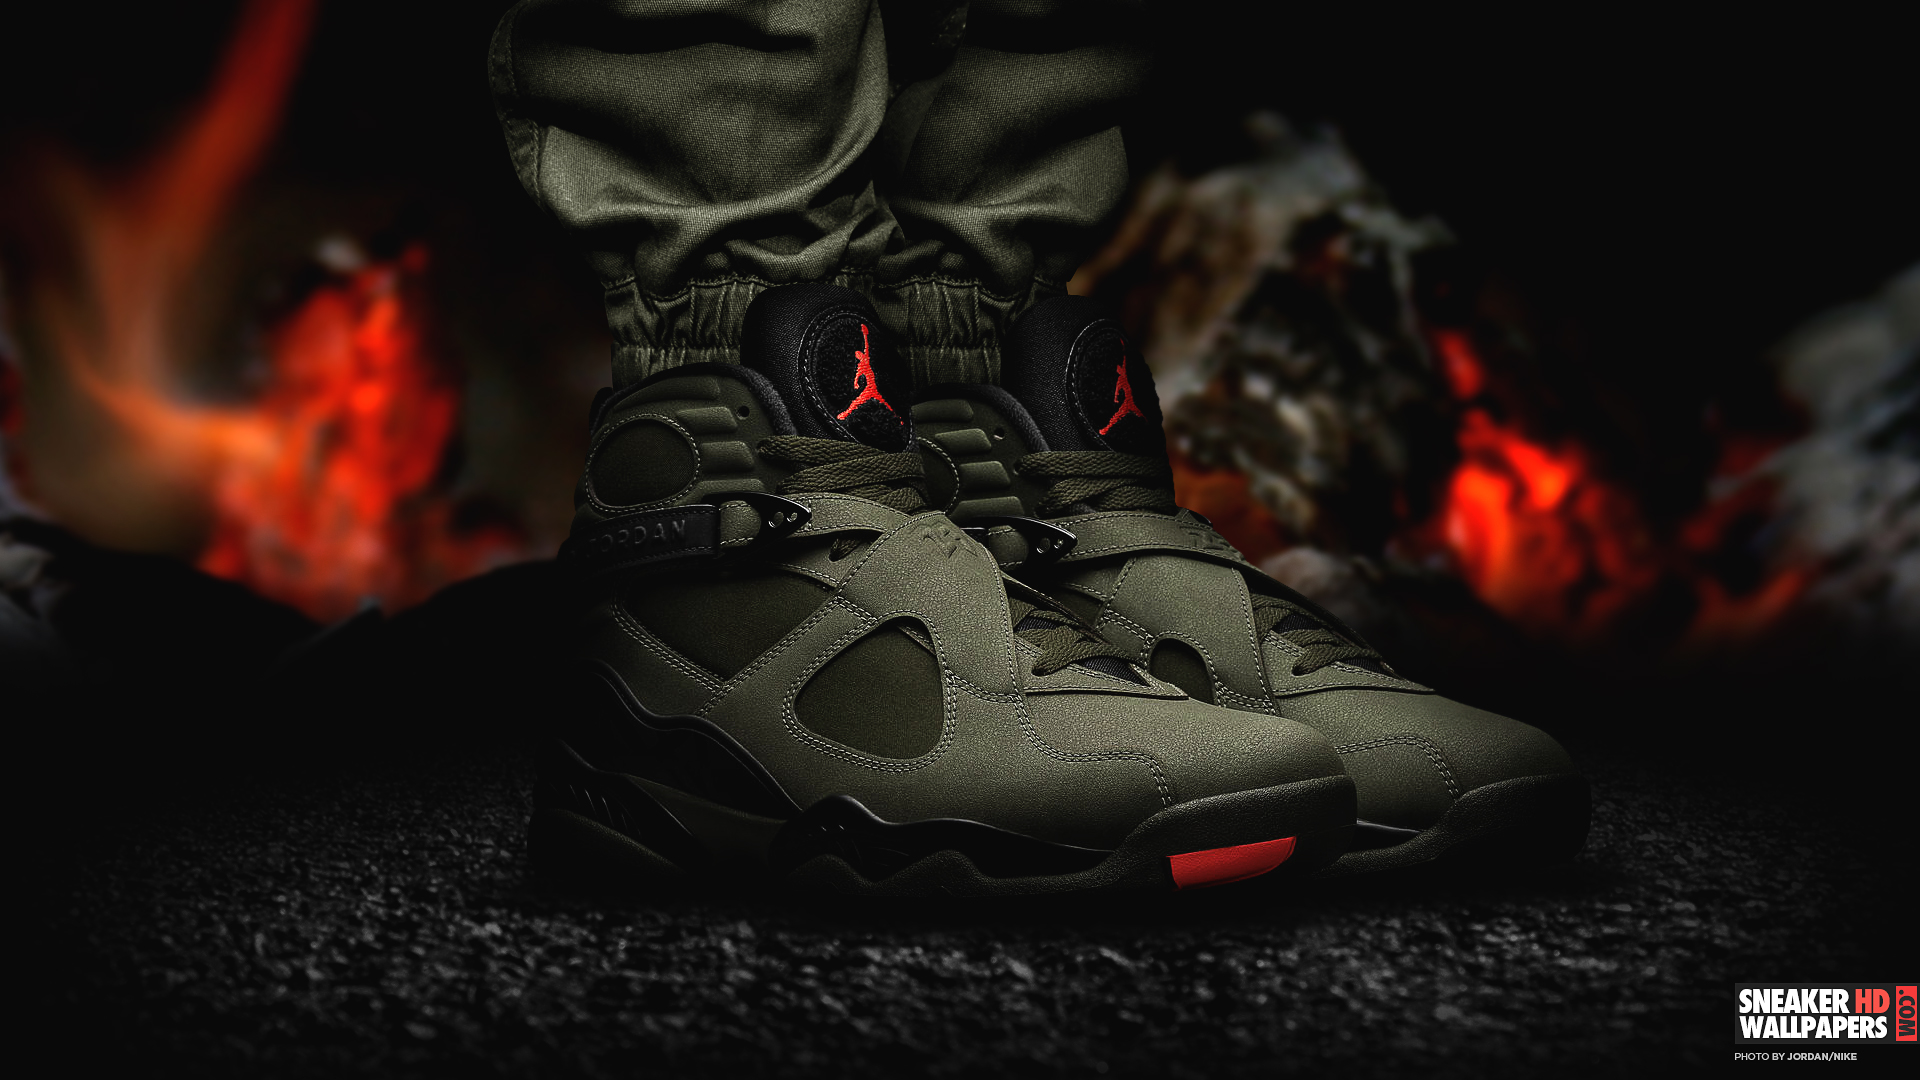 SneakerHDWallpapers Your Favorite Sneakers In HD And Mobile